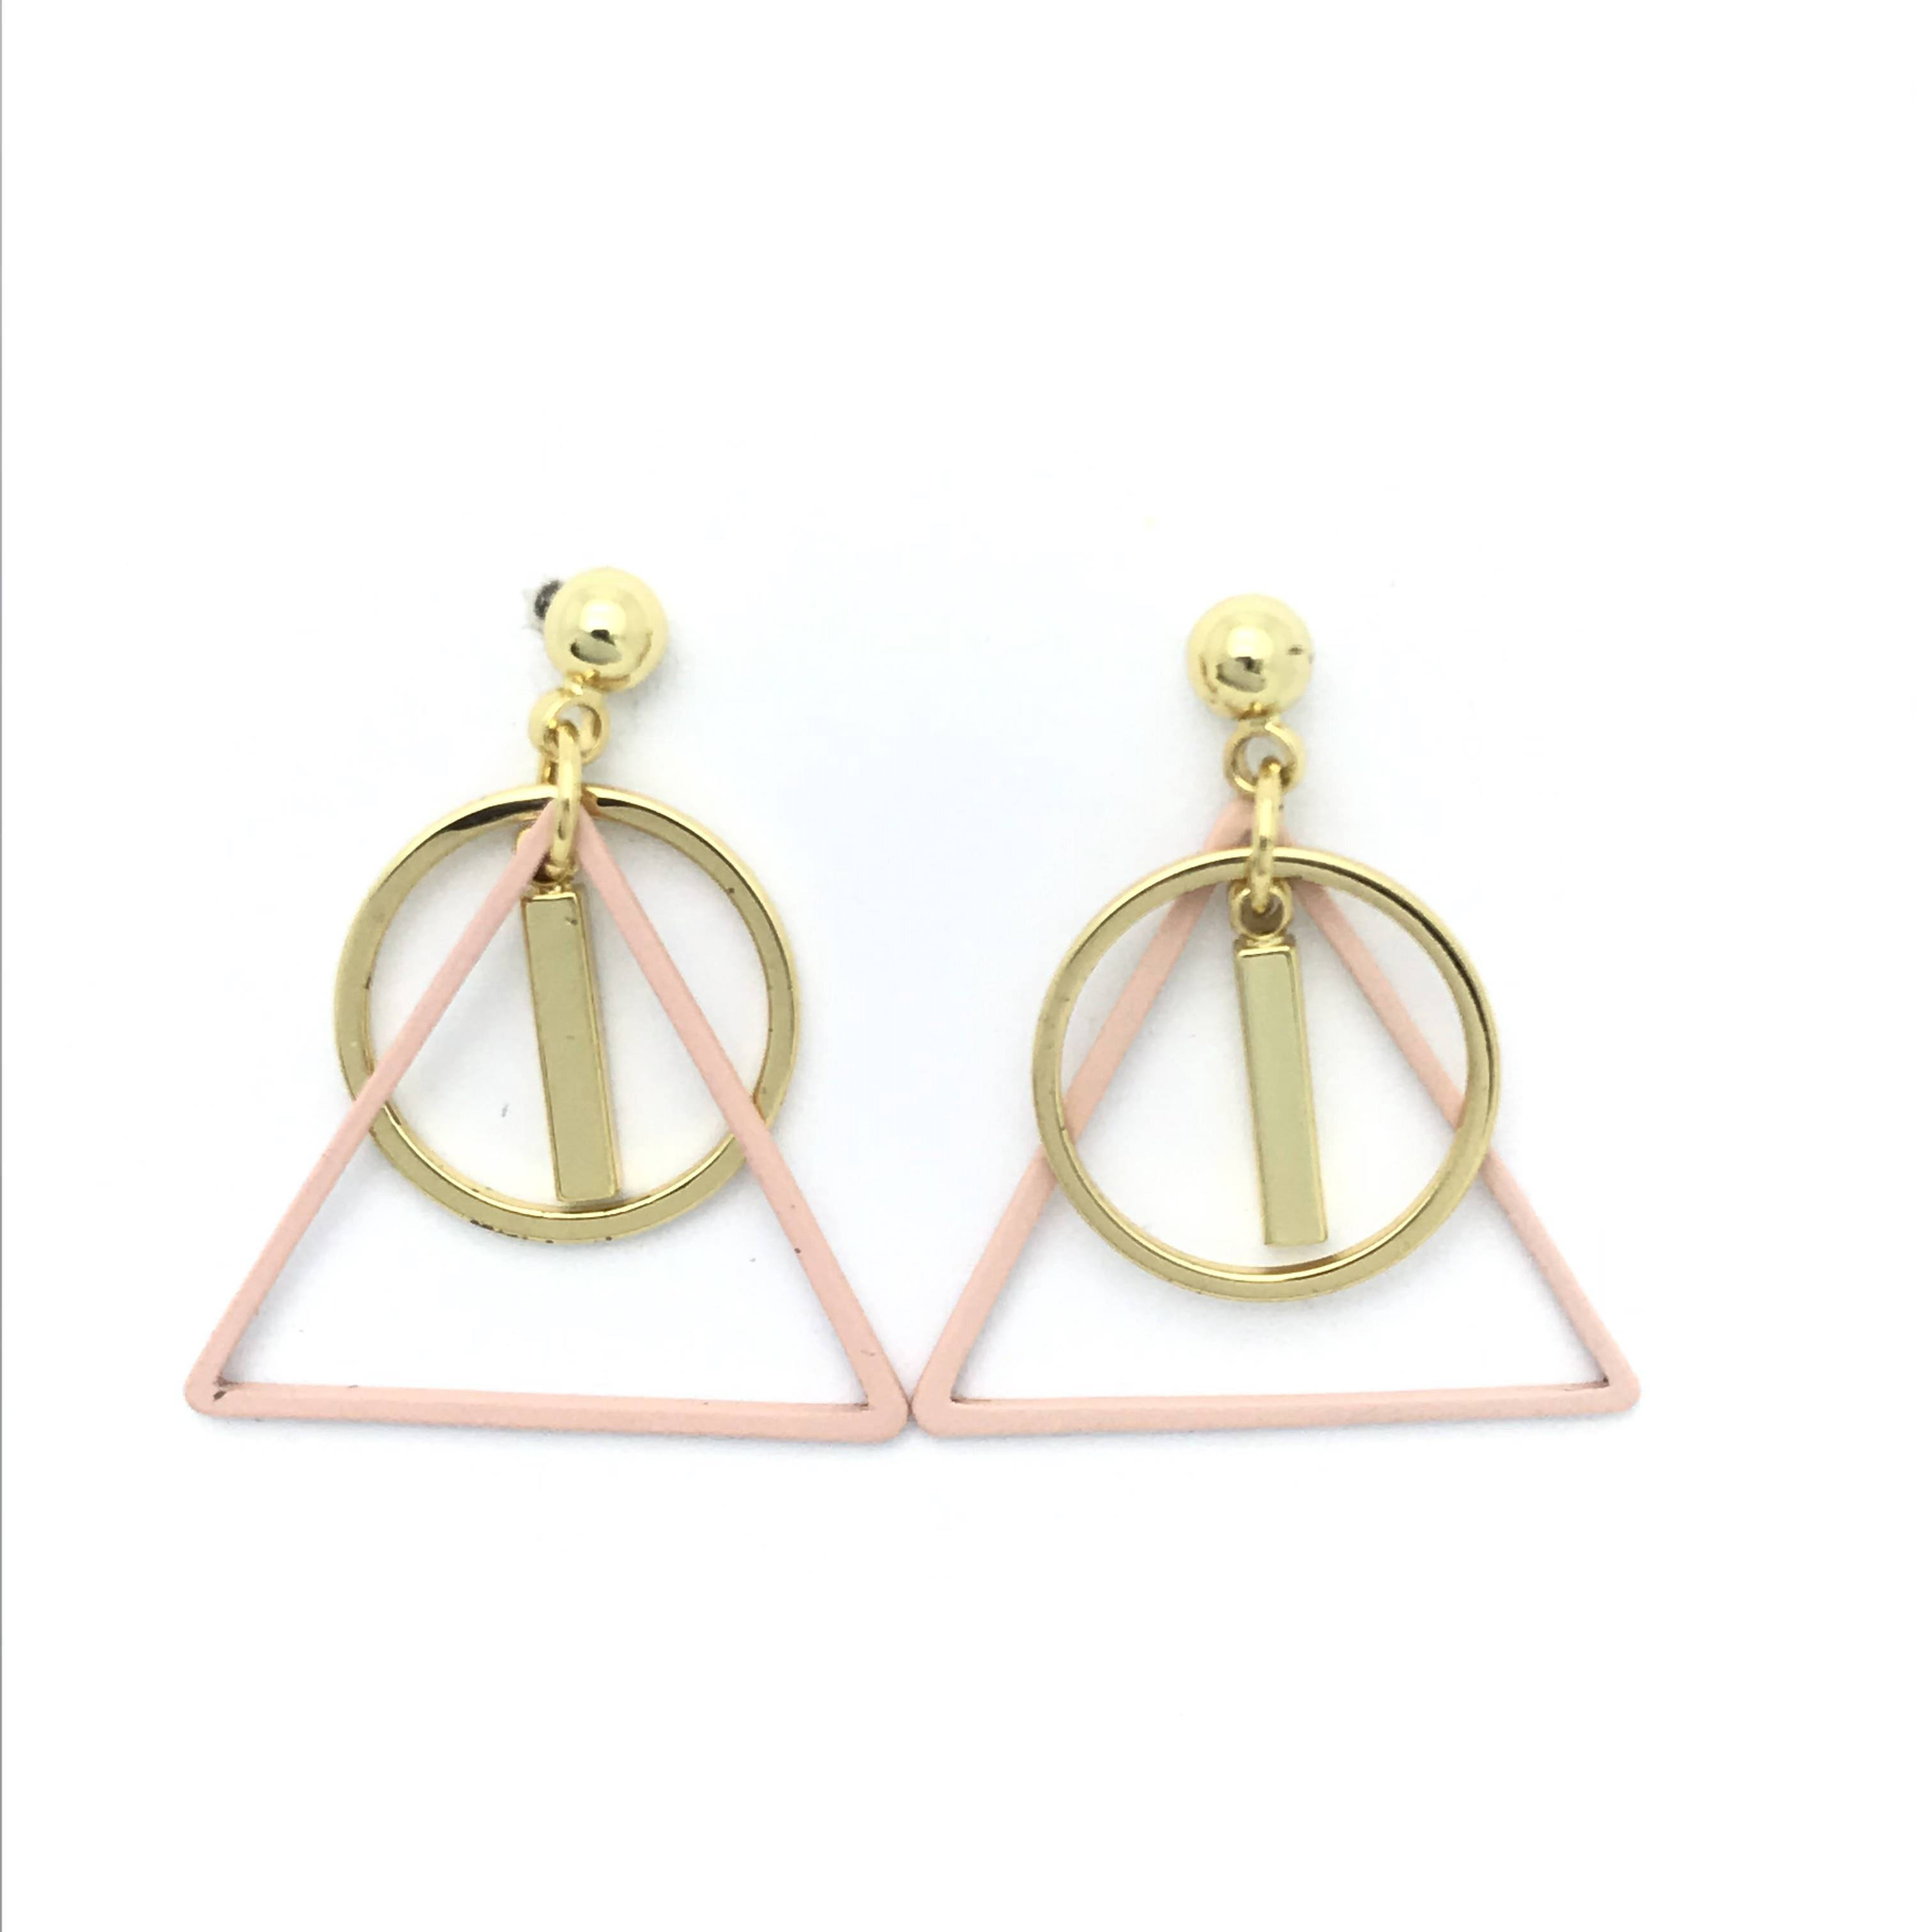 Eico Popular Geometric Drop Earrings Triangle Round Double Earrings 2019